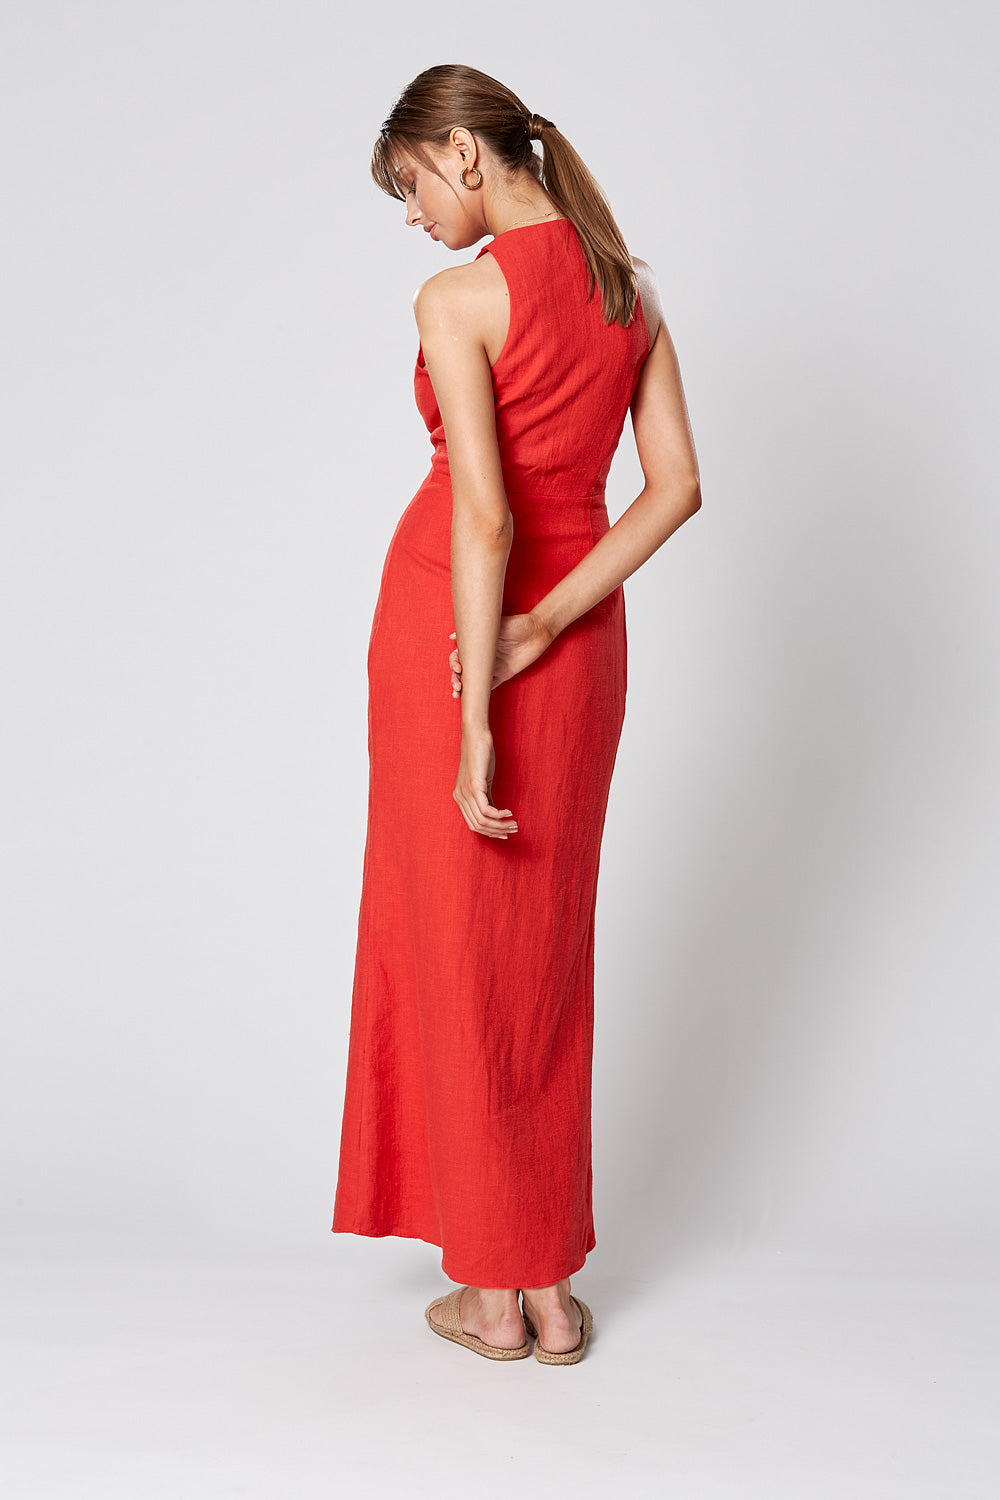 MATISSE BUTTON MAXI DRESS RED